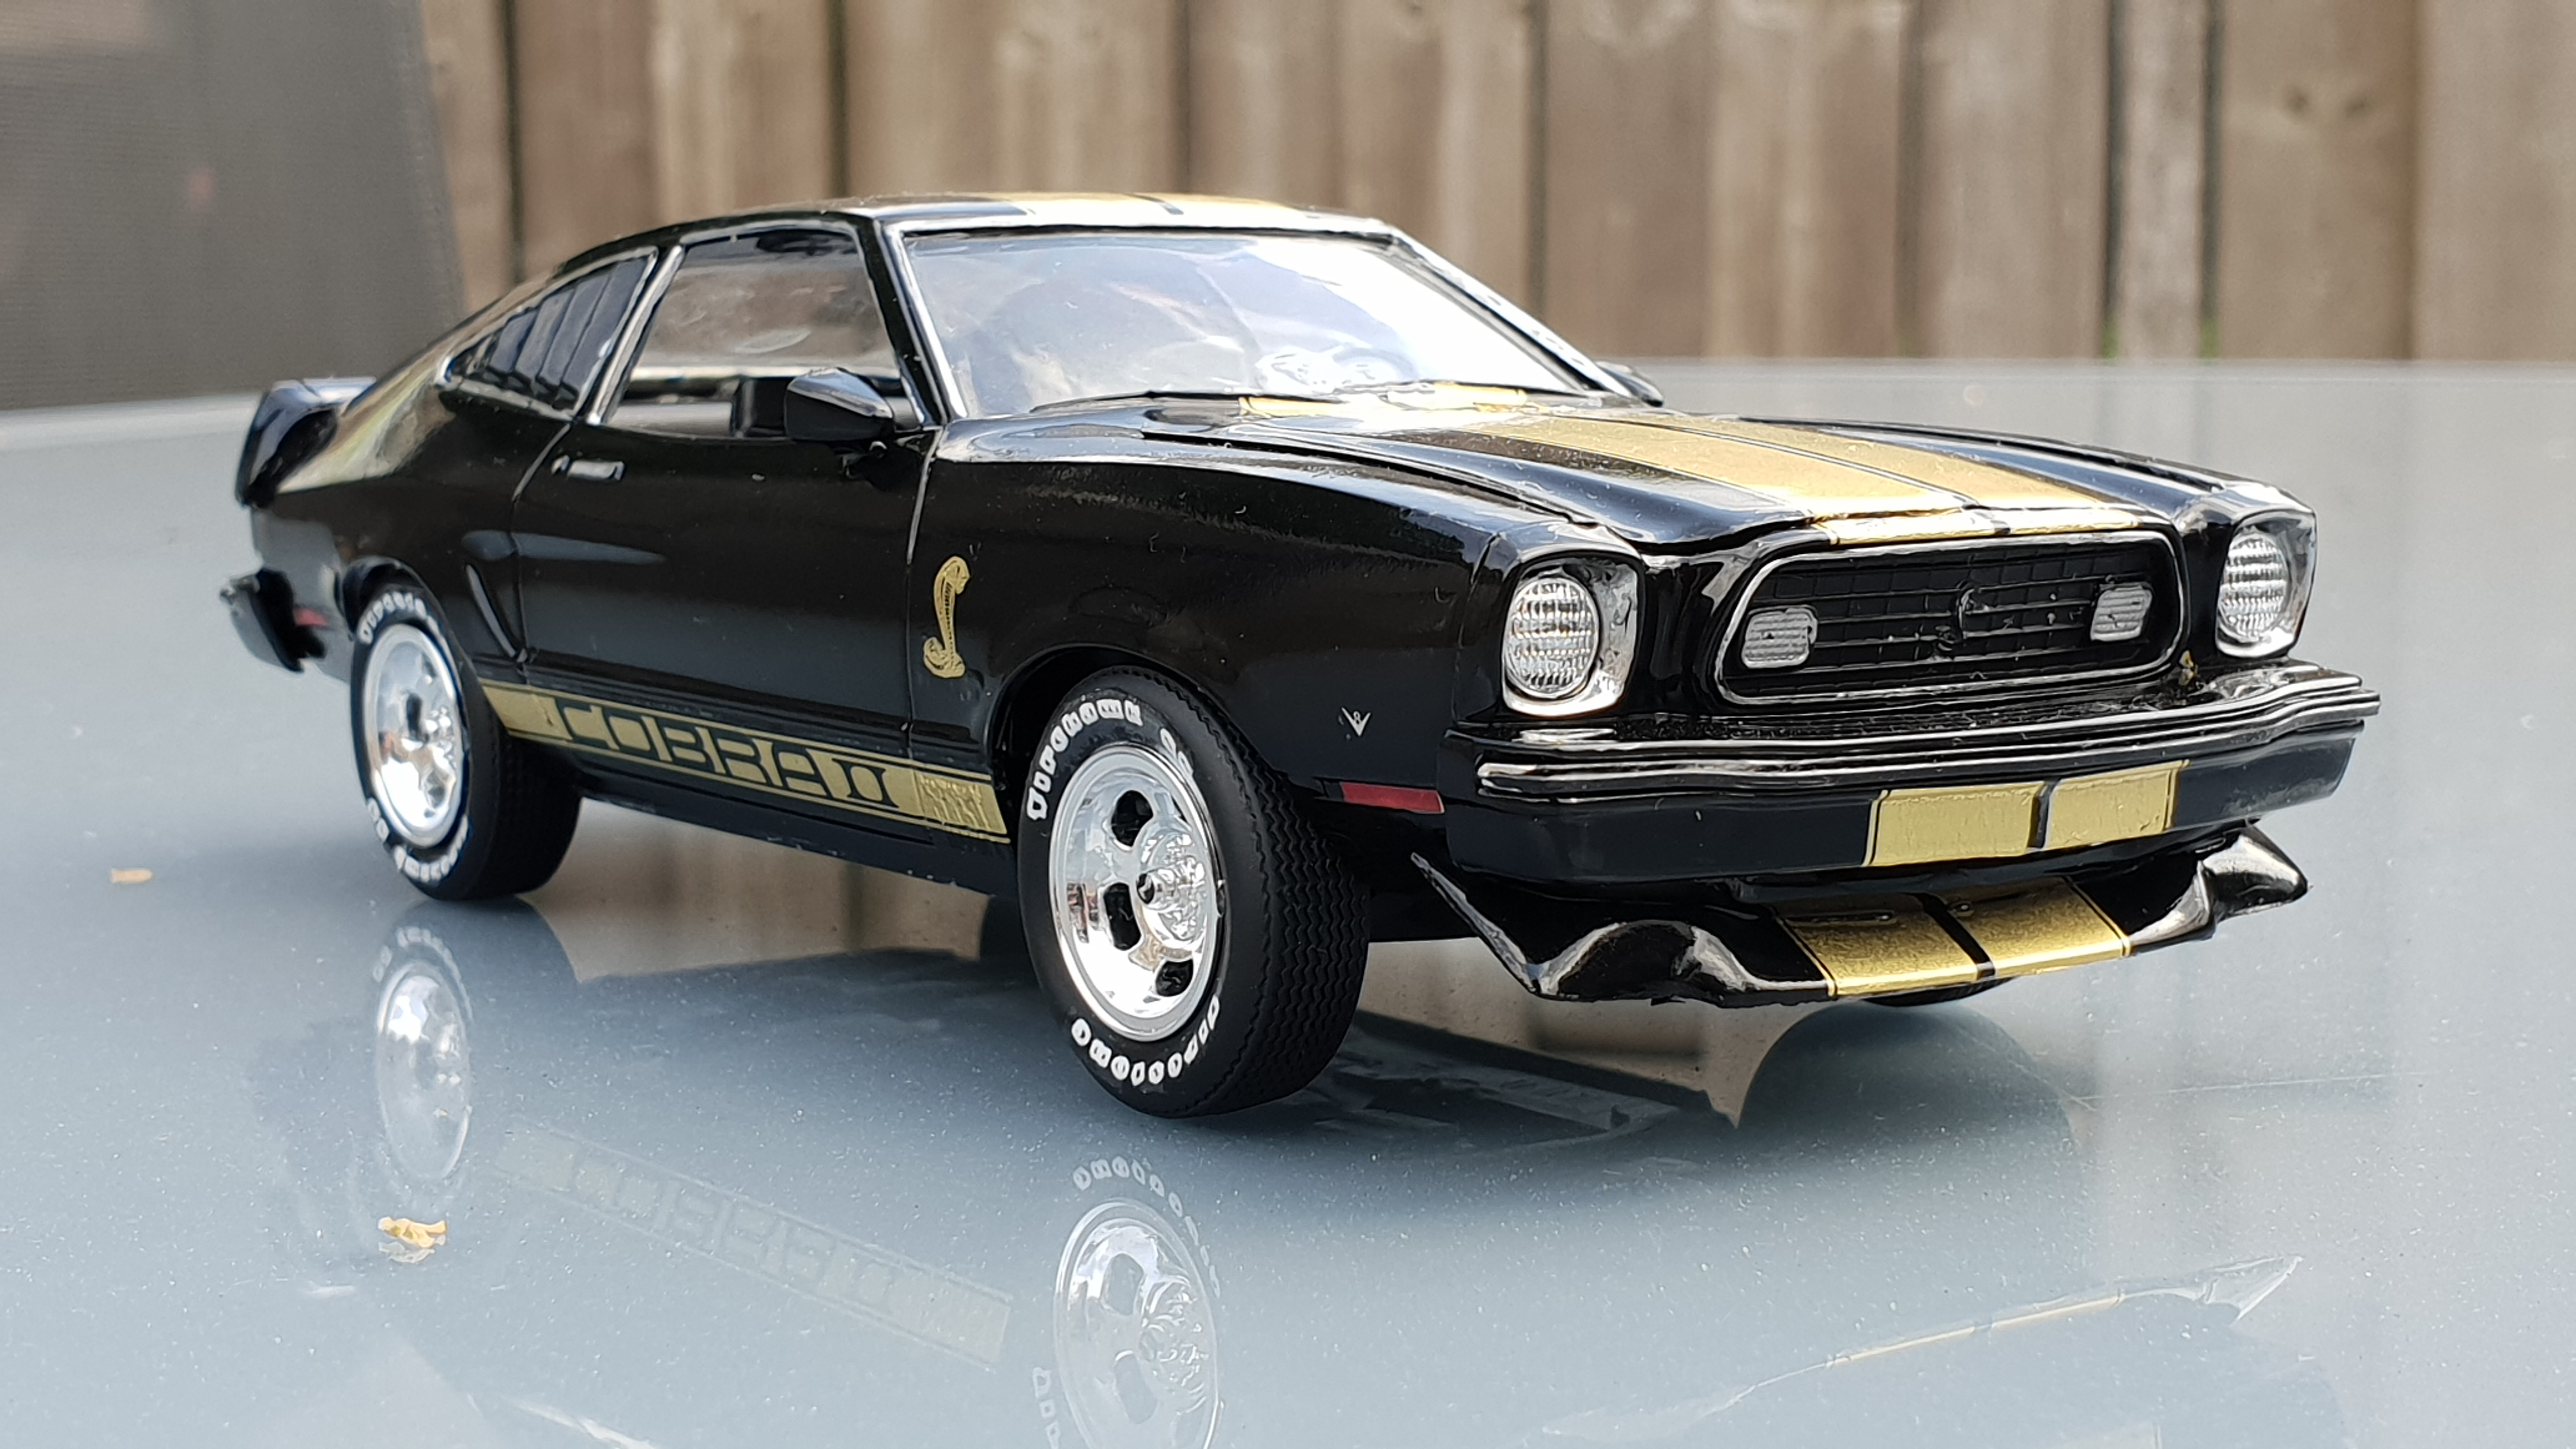 1976 ford mustang ii cobra ii mpc rays kits 1976 Mustang Cobra then around the same time i was designing the series of mustang ii decals among which the cobra ii so i had one printed in nice metallic gold as in my